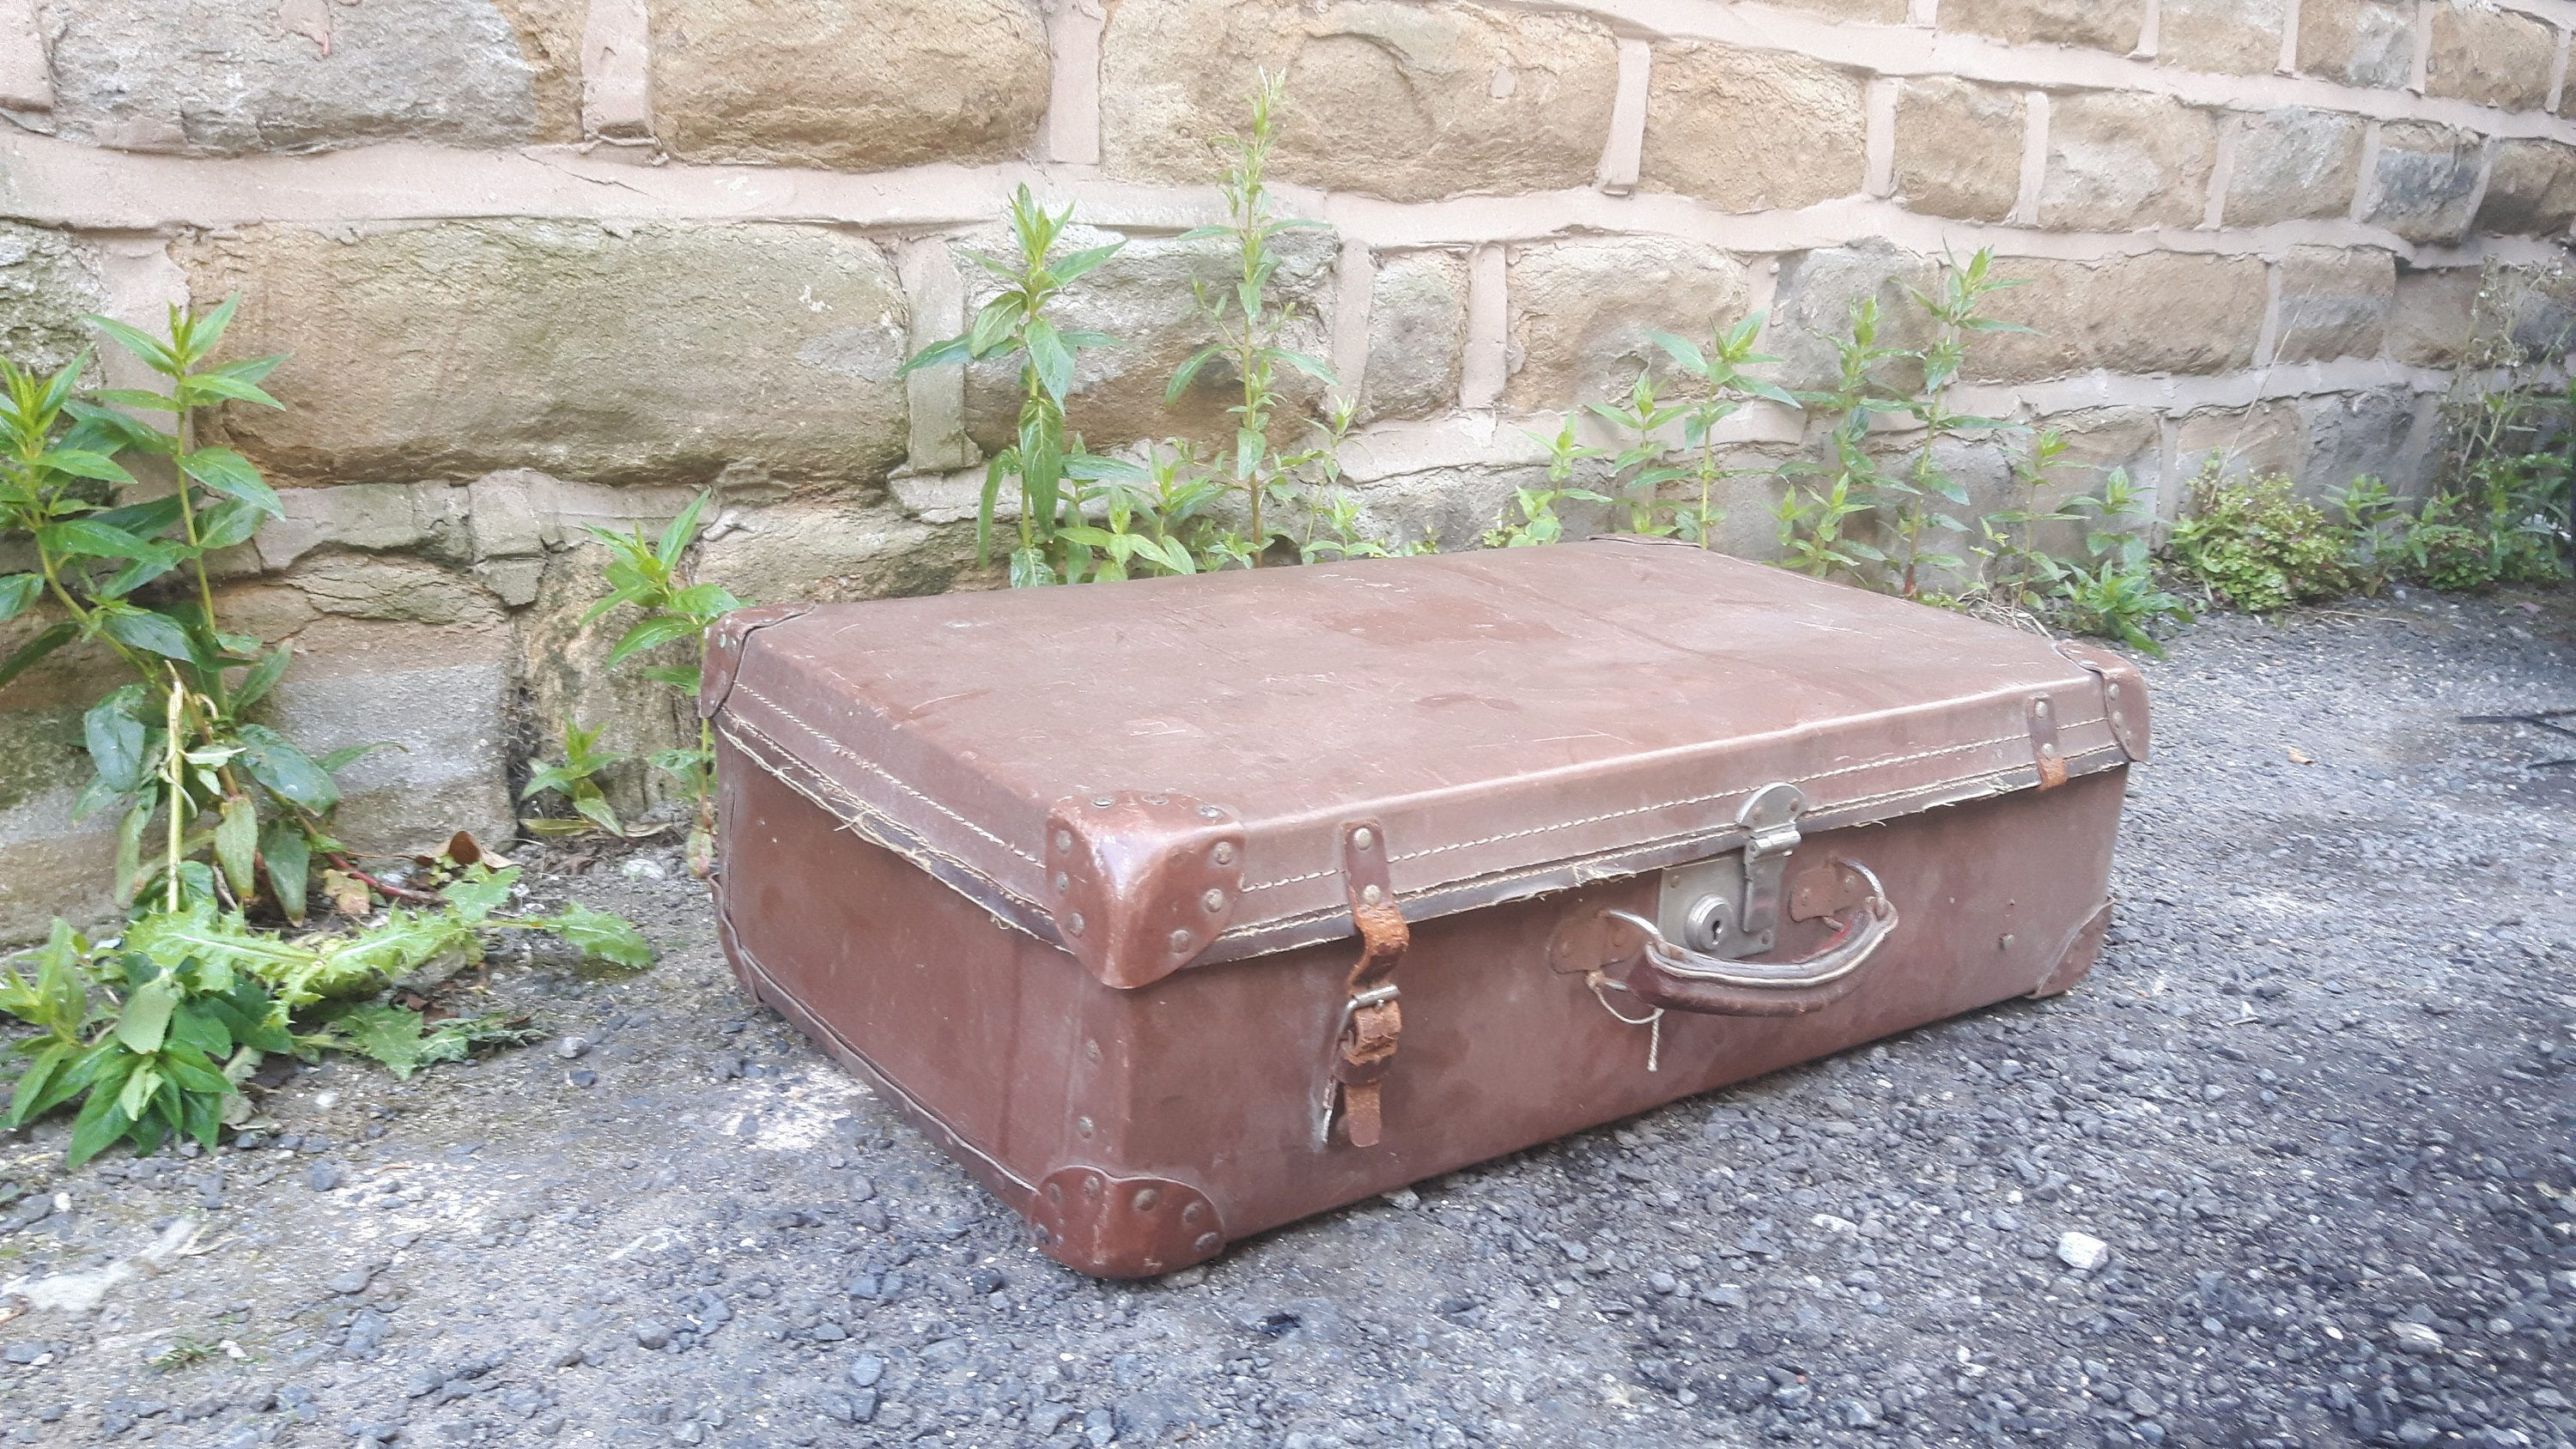 Merveilleux Vintage Retro Brown Leather Suitcase Luggage Trunk Briefcase Storage  Display By LuxeandBear On Etsy